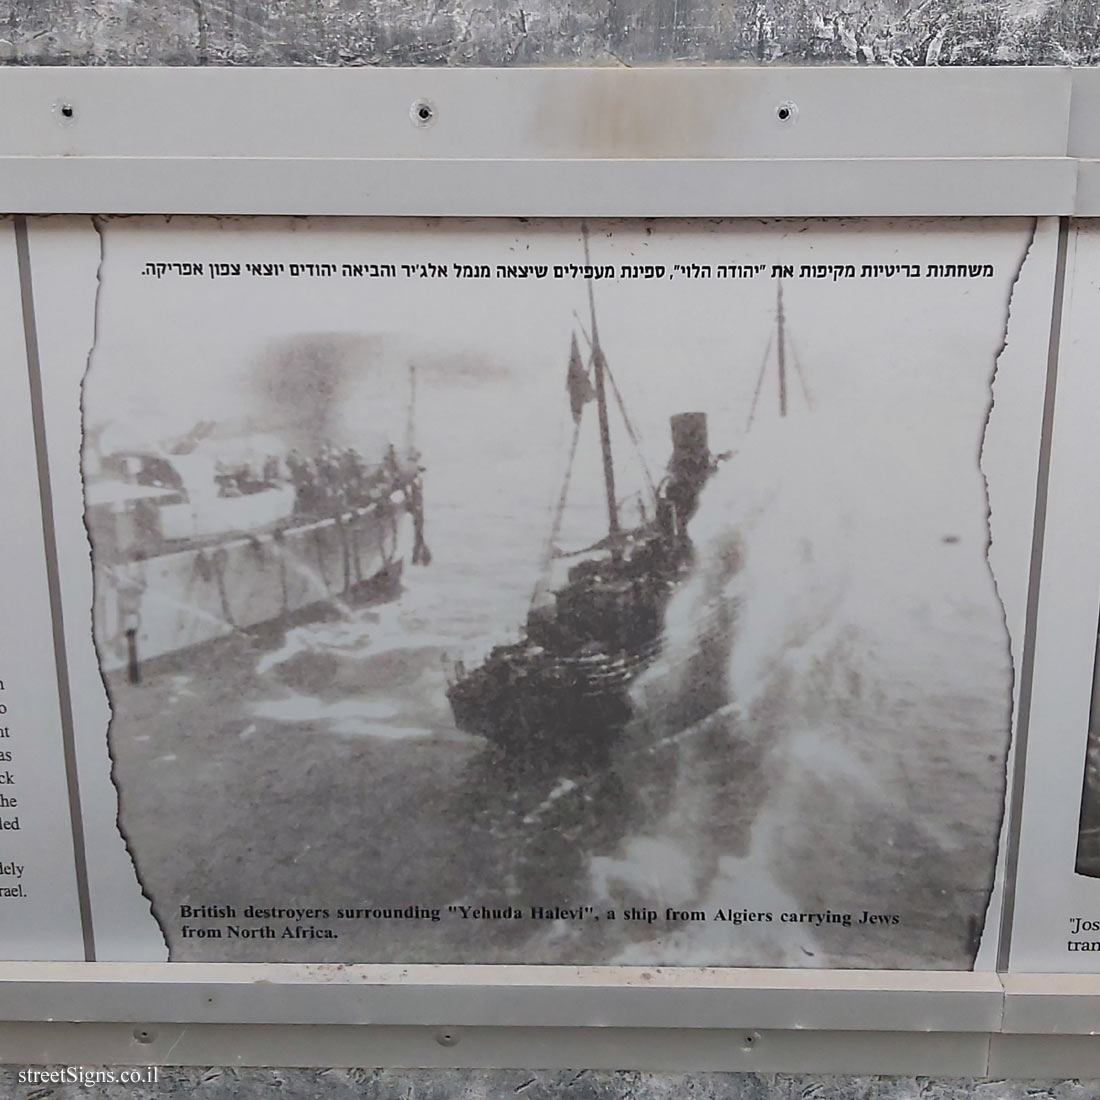 "Tel Aviv - London Garden - The story of the illegal immigration - The ship ""Yehuda Halevi"""